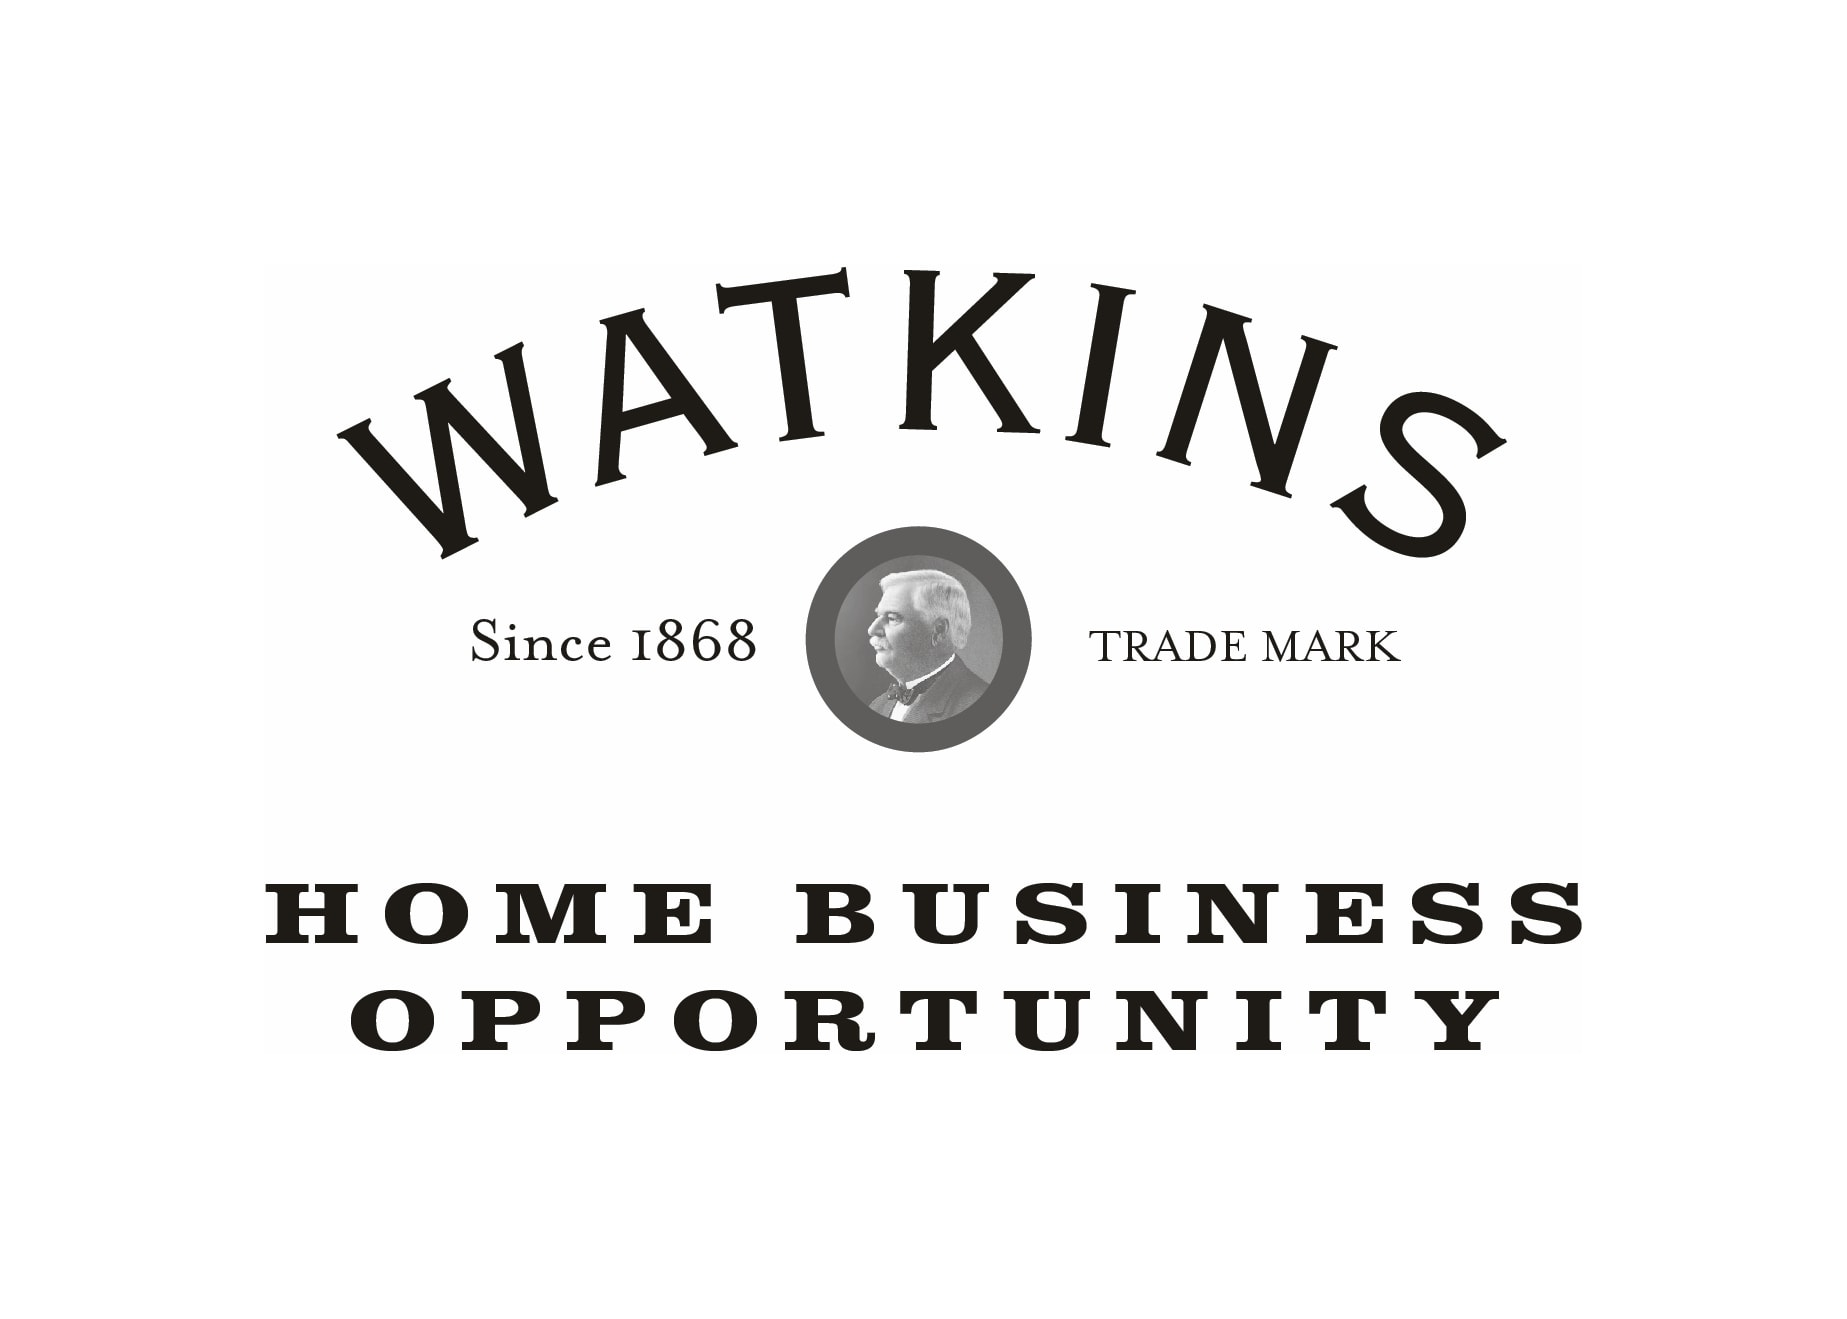 Dorothy Welsh Independent J.R. Watkins Consultant